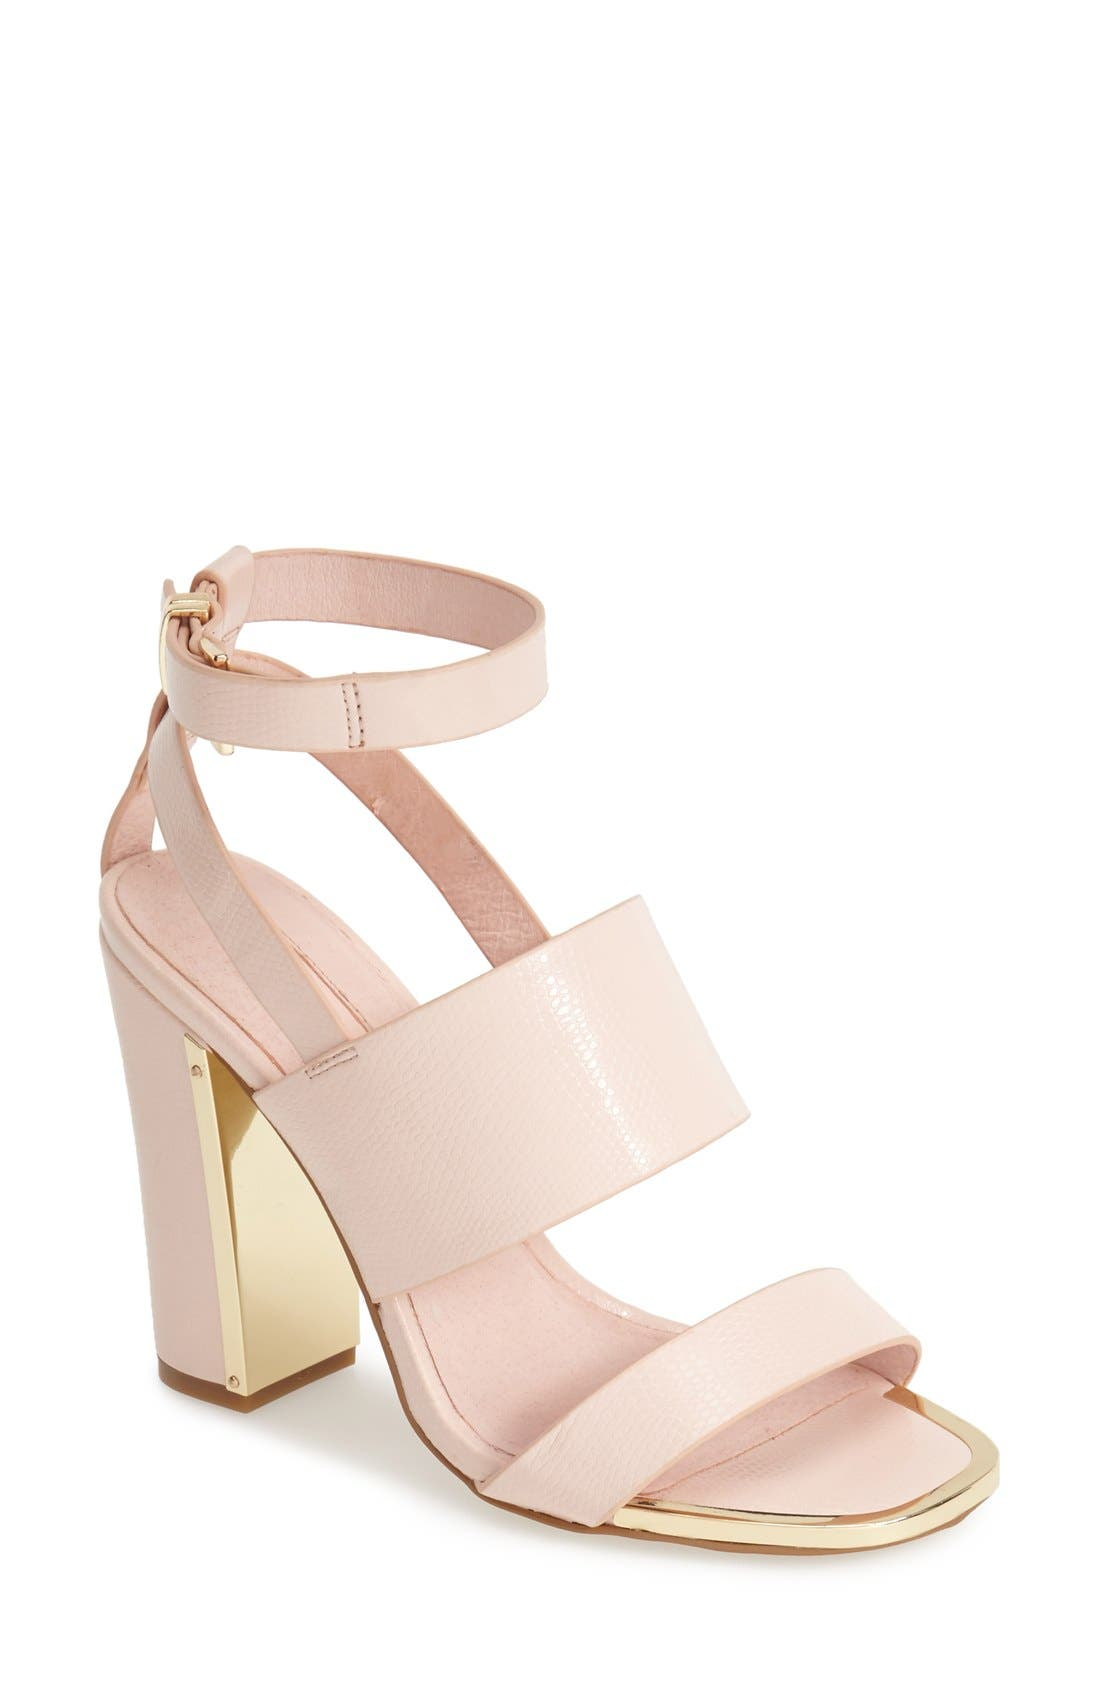 Main Image - Topshop 'Riot' Lizard Embossed Ankle Strap Sandals (Women)